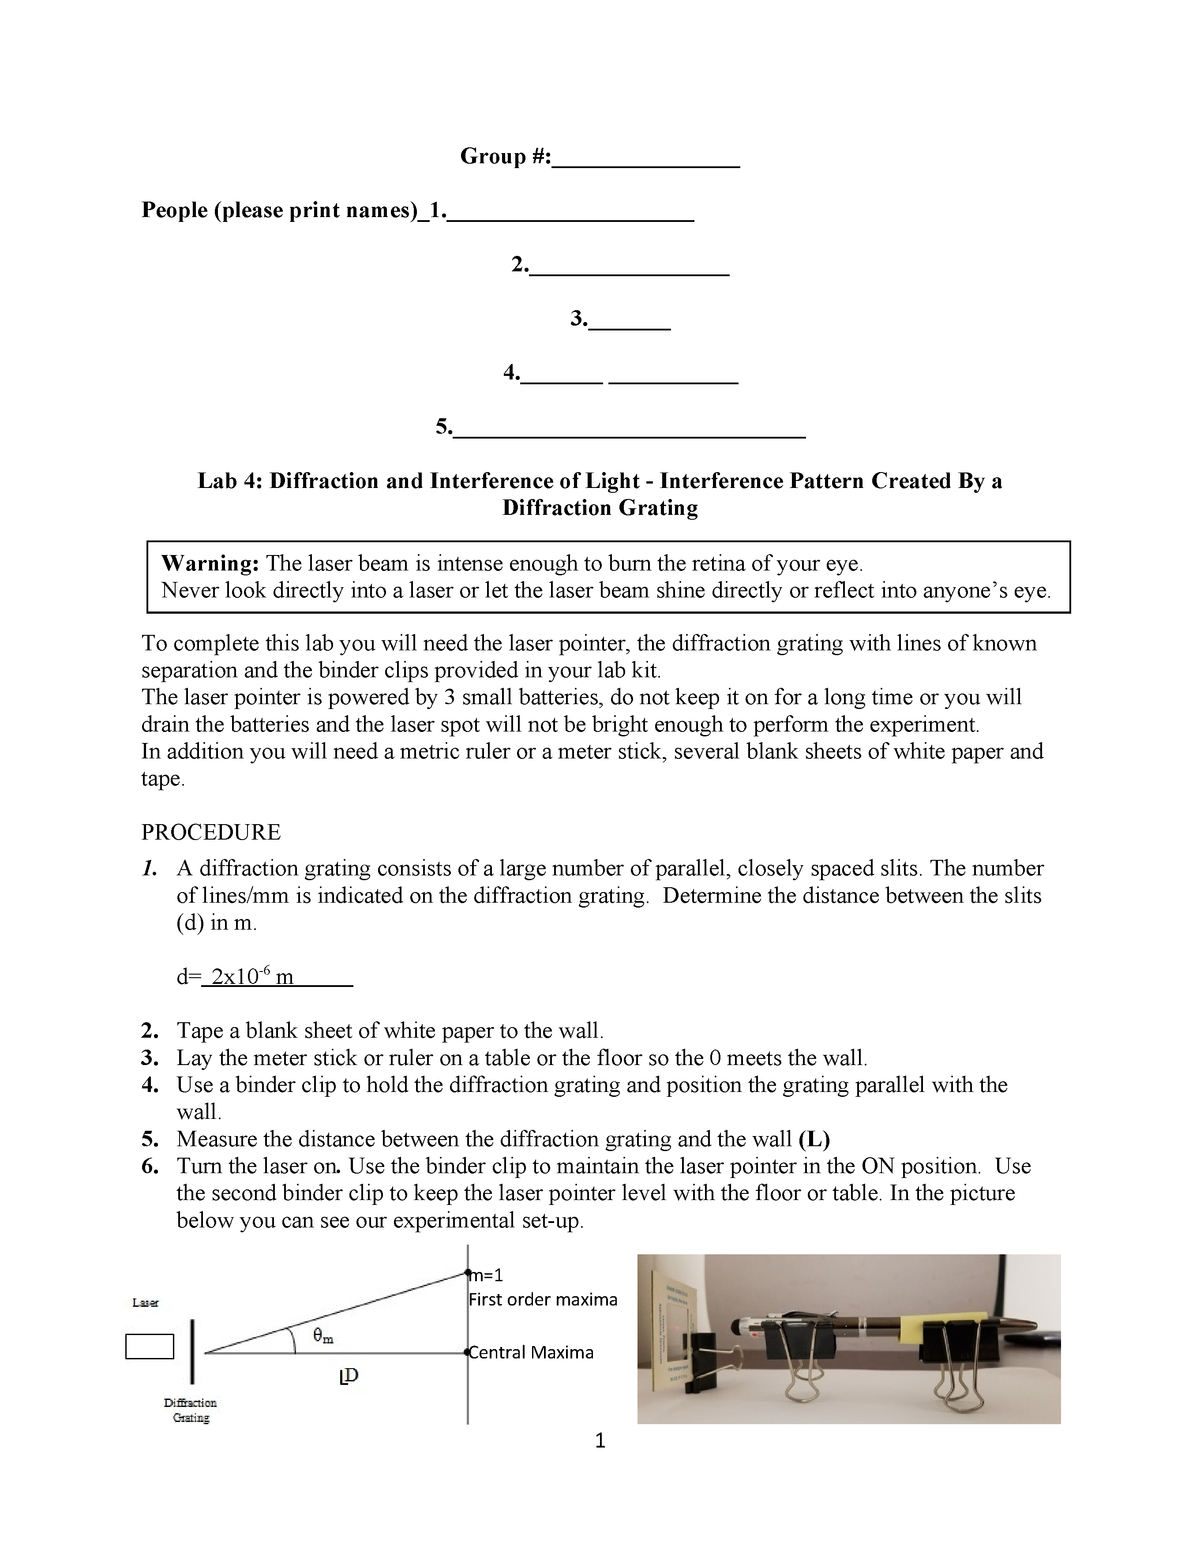 Lab 4 Worksheet 41 Lab Assignment From The Online Course